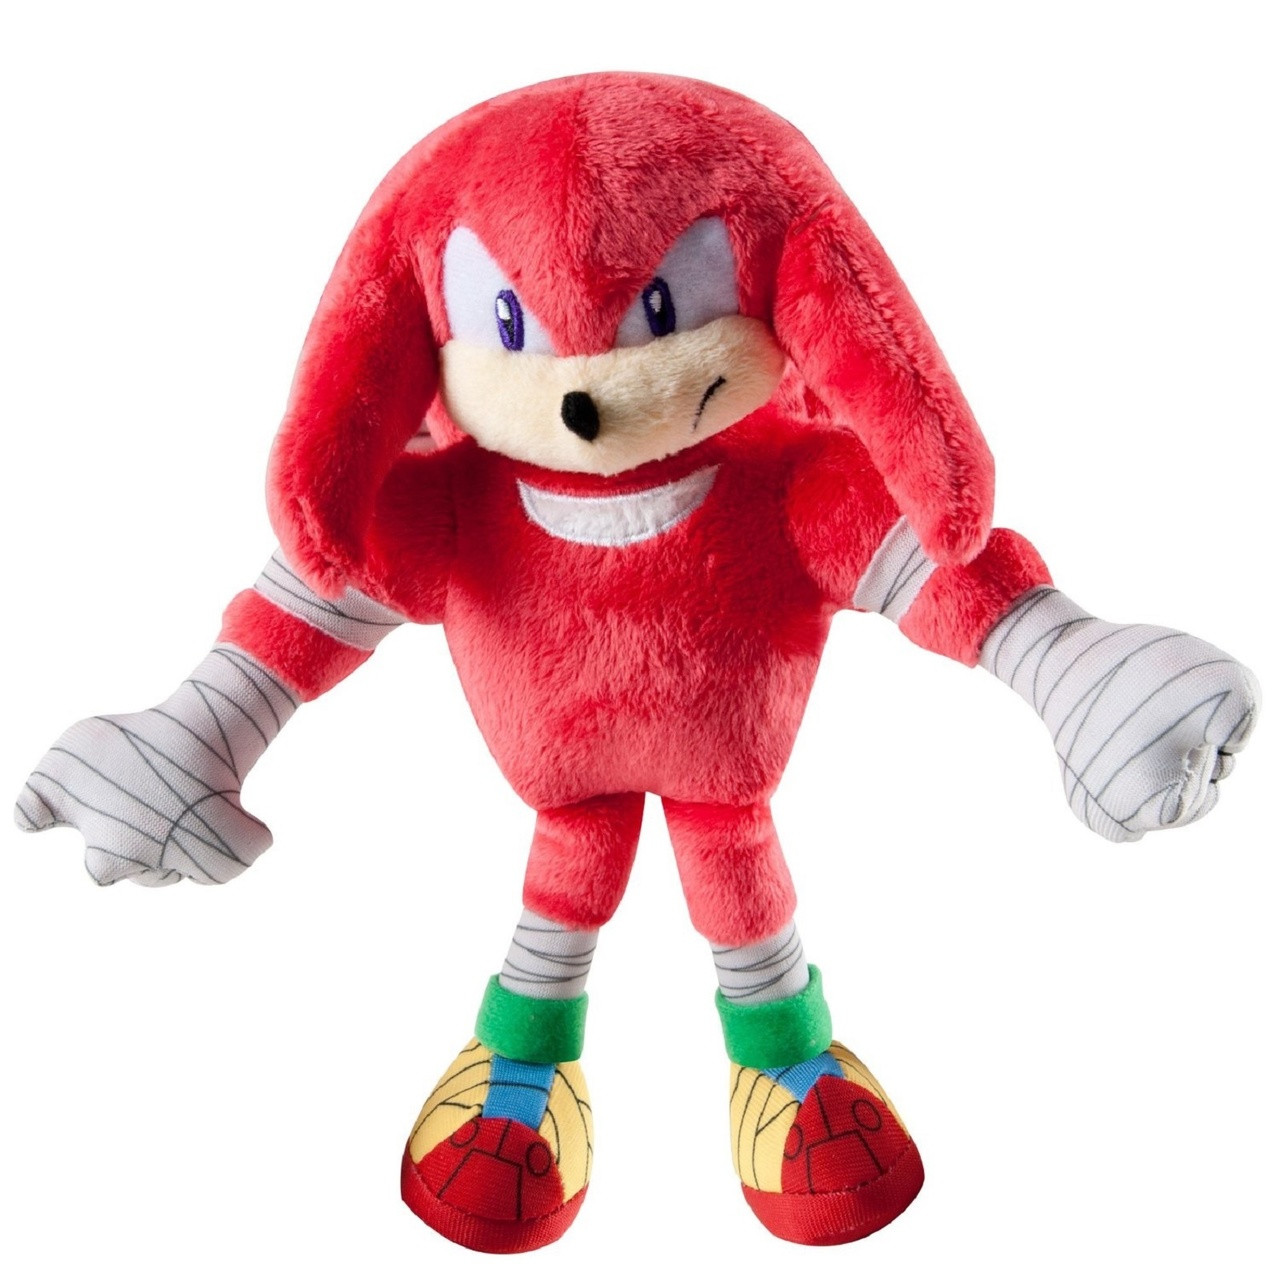 "Sonic Boom Small 7"" Plush Toy - Knuckles"